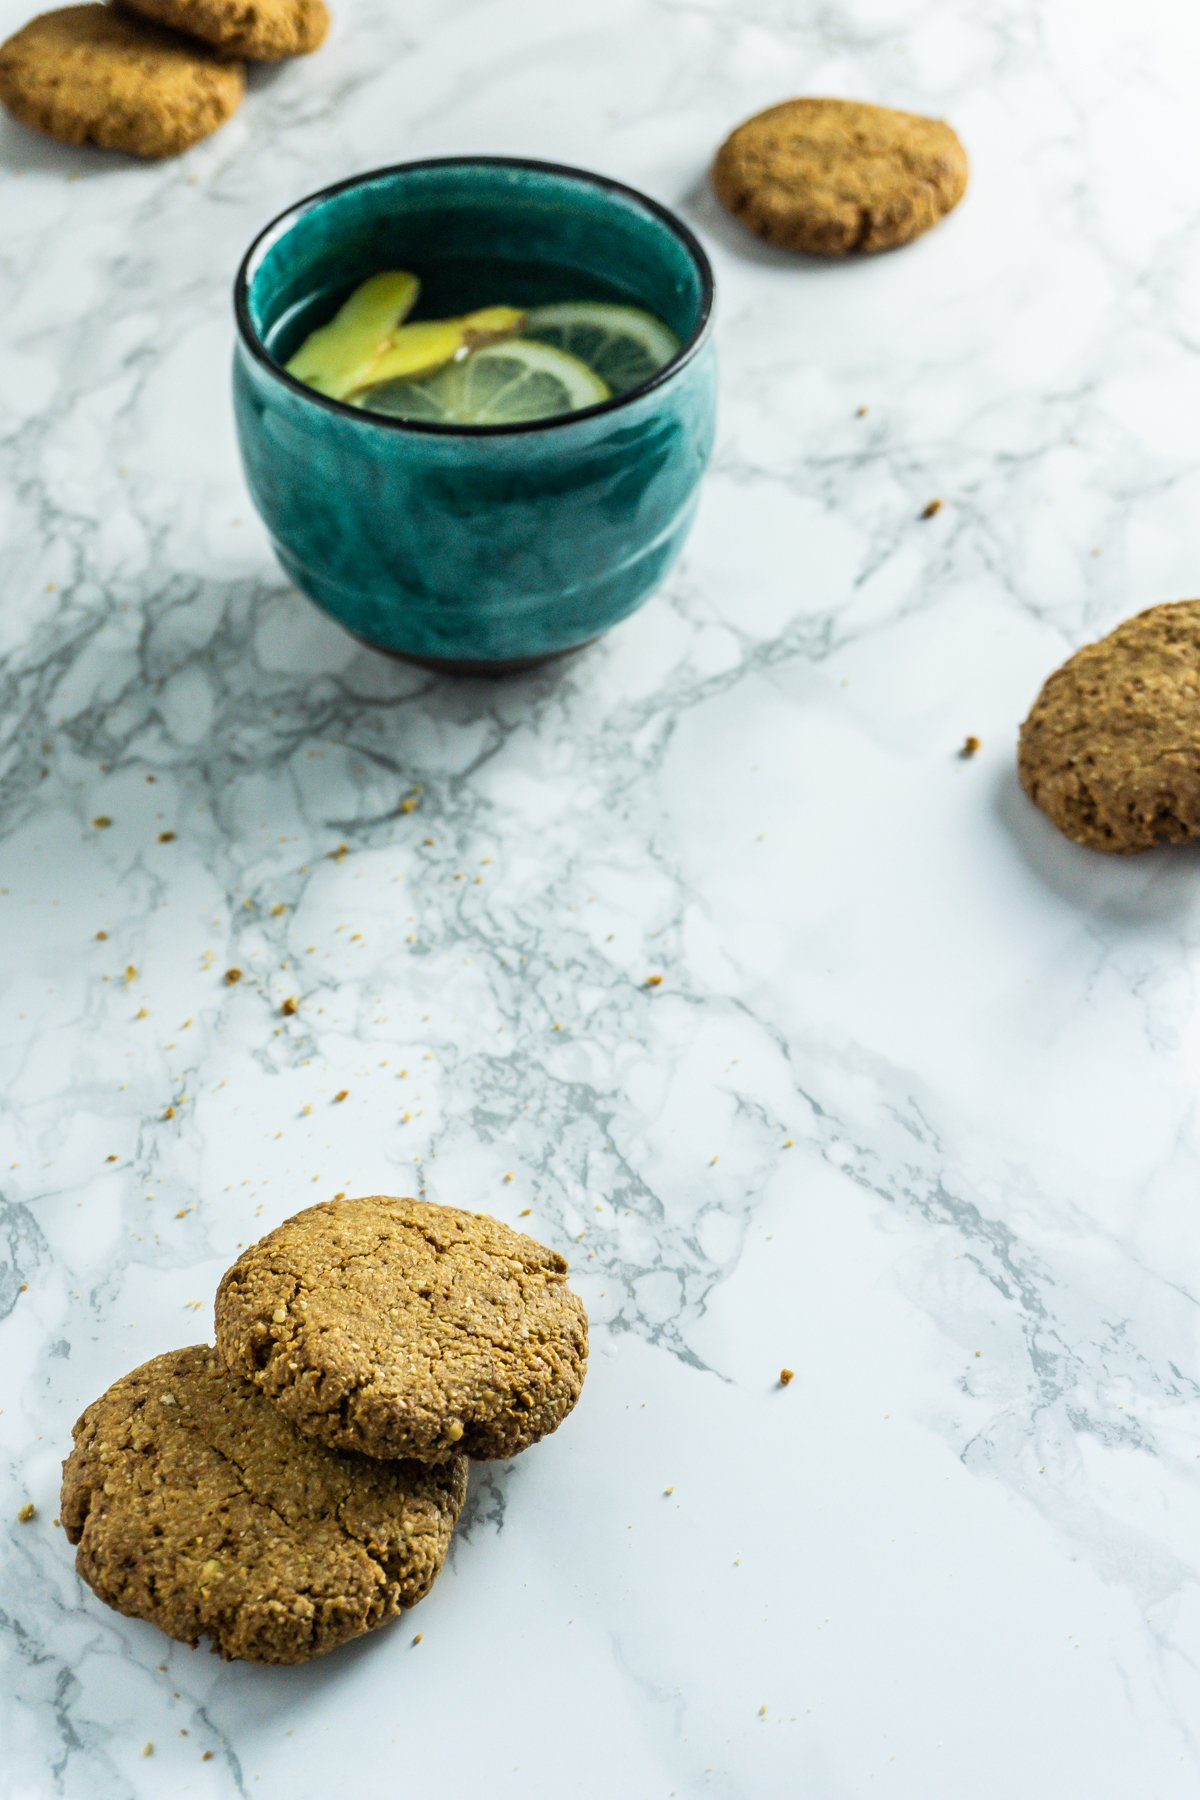 Scattered Crunchy Ginger Cookies with a lemon and ginger tea on a marble background